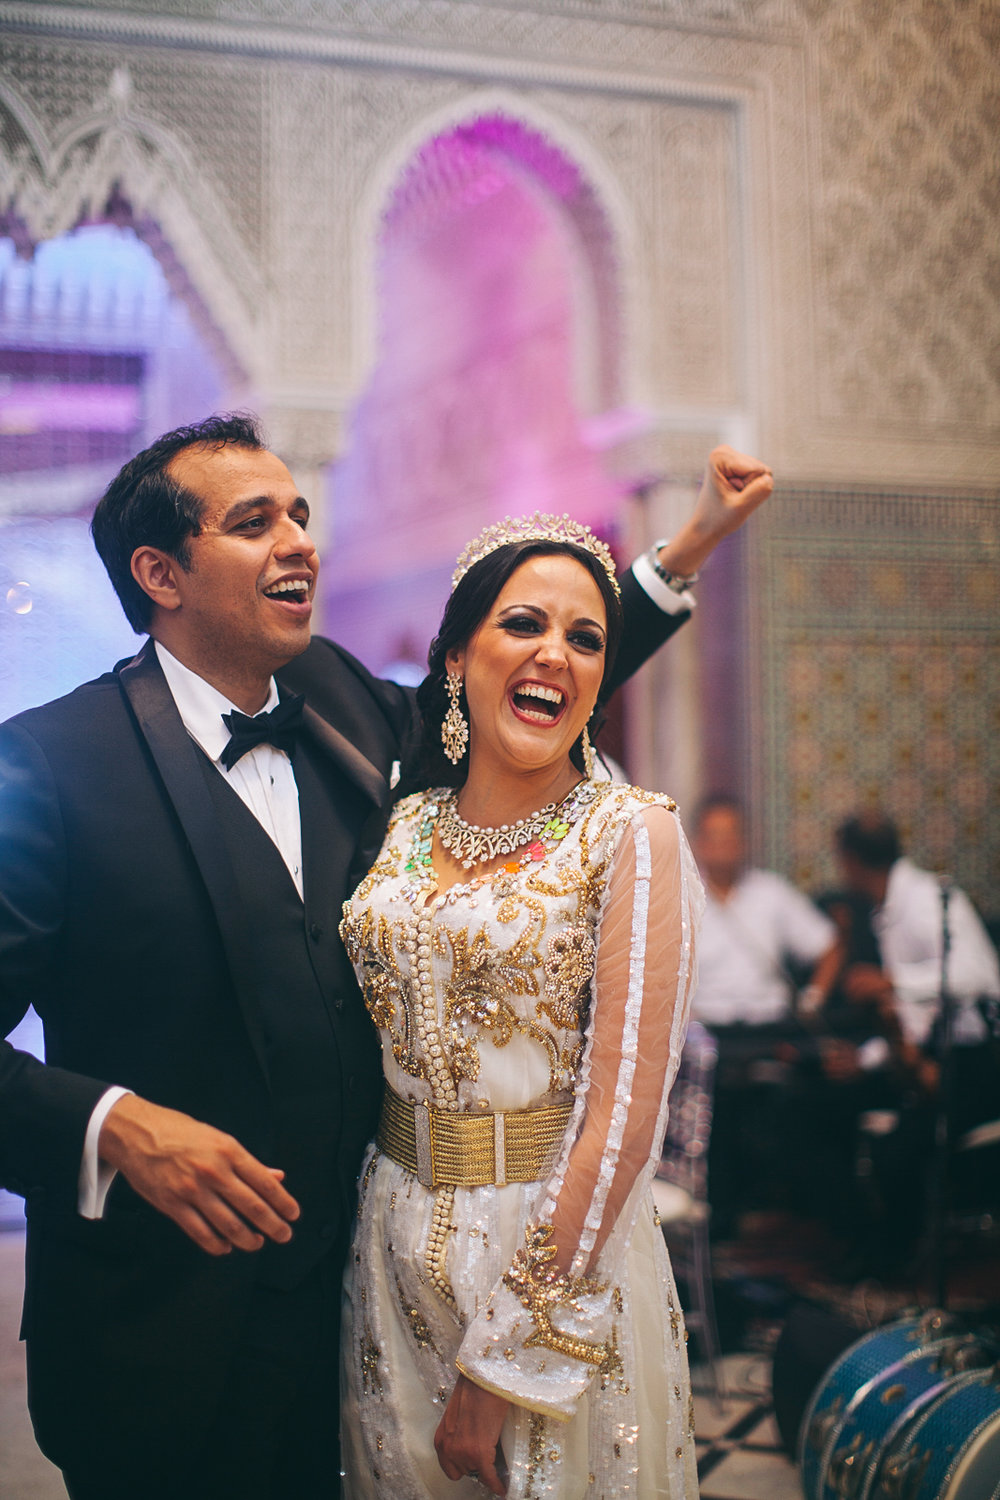 traditional_moroccan_wedding_photographry_casablanca_morocco_houda_vivek_ebony_siovhan_bokeh_photography_150.jpg